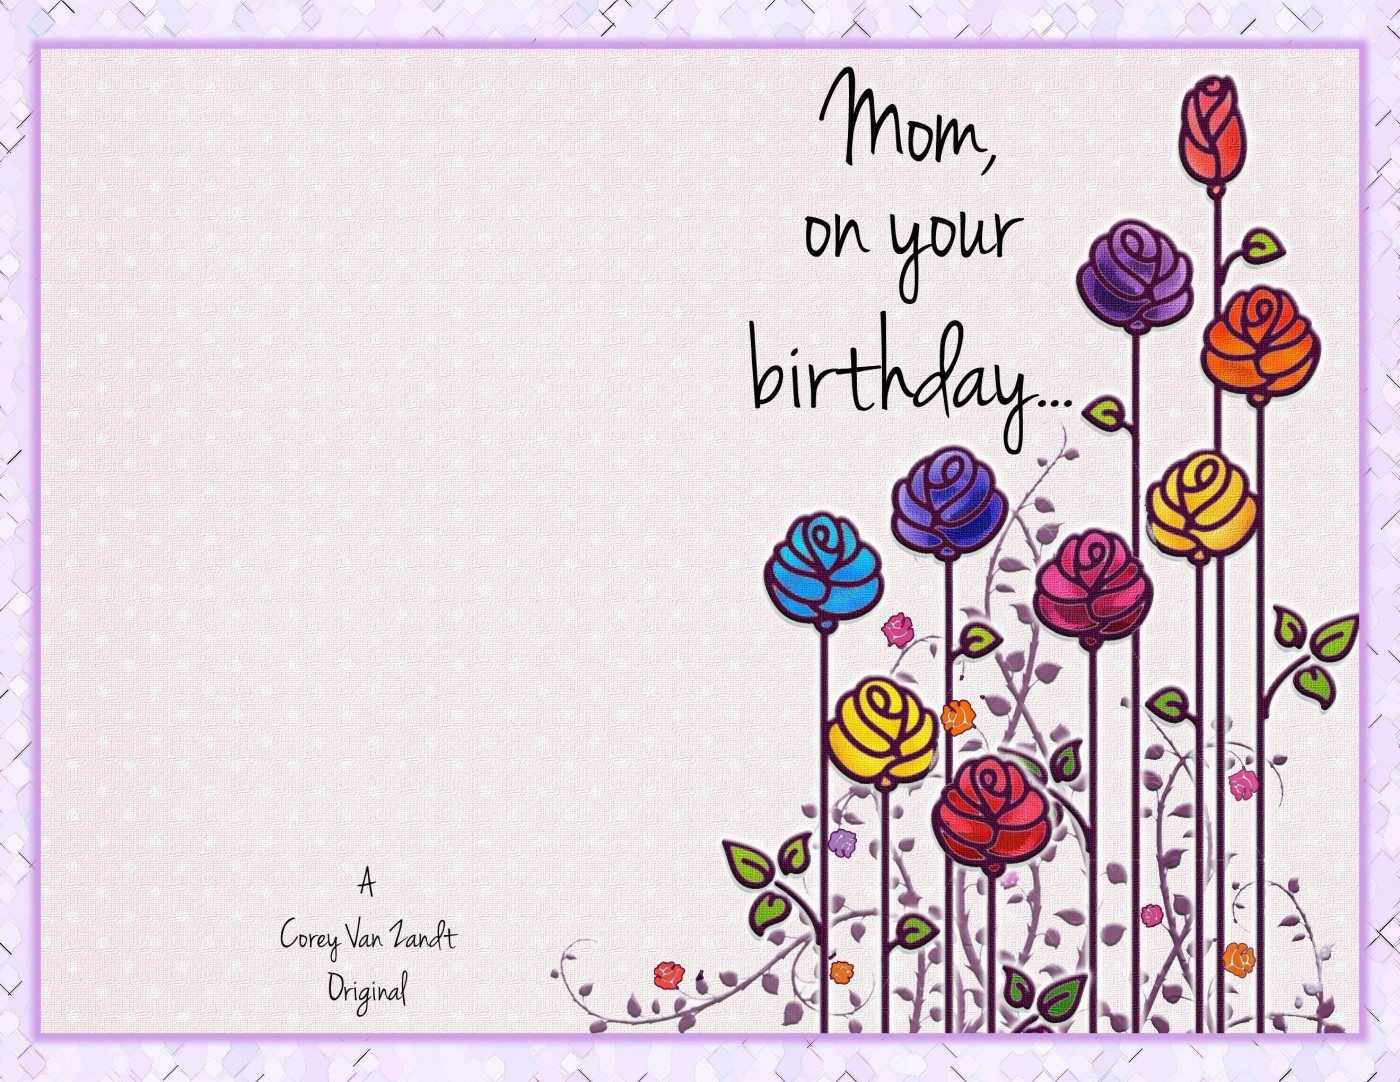 Mom Birthday Card Template | Theveliger Inside Mom Birthday Card Template